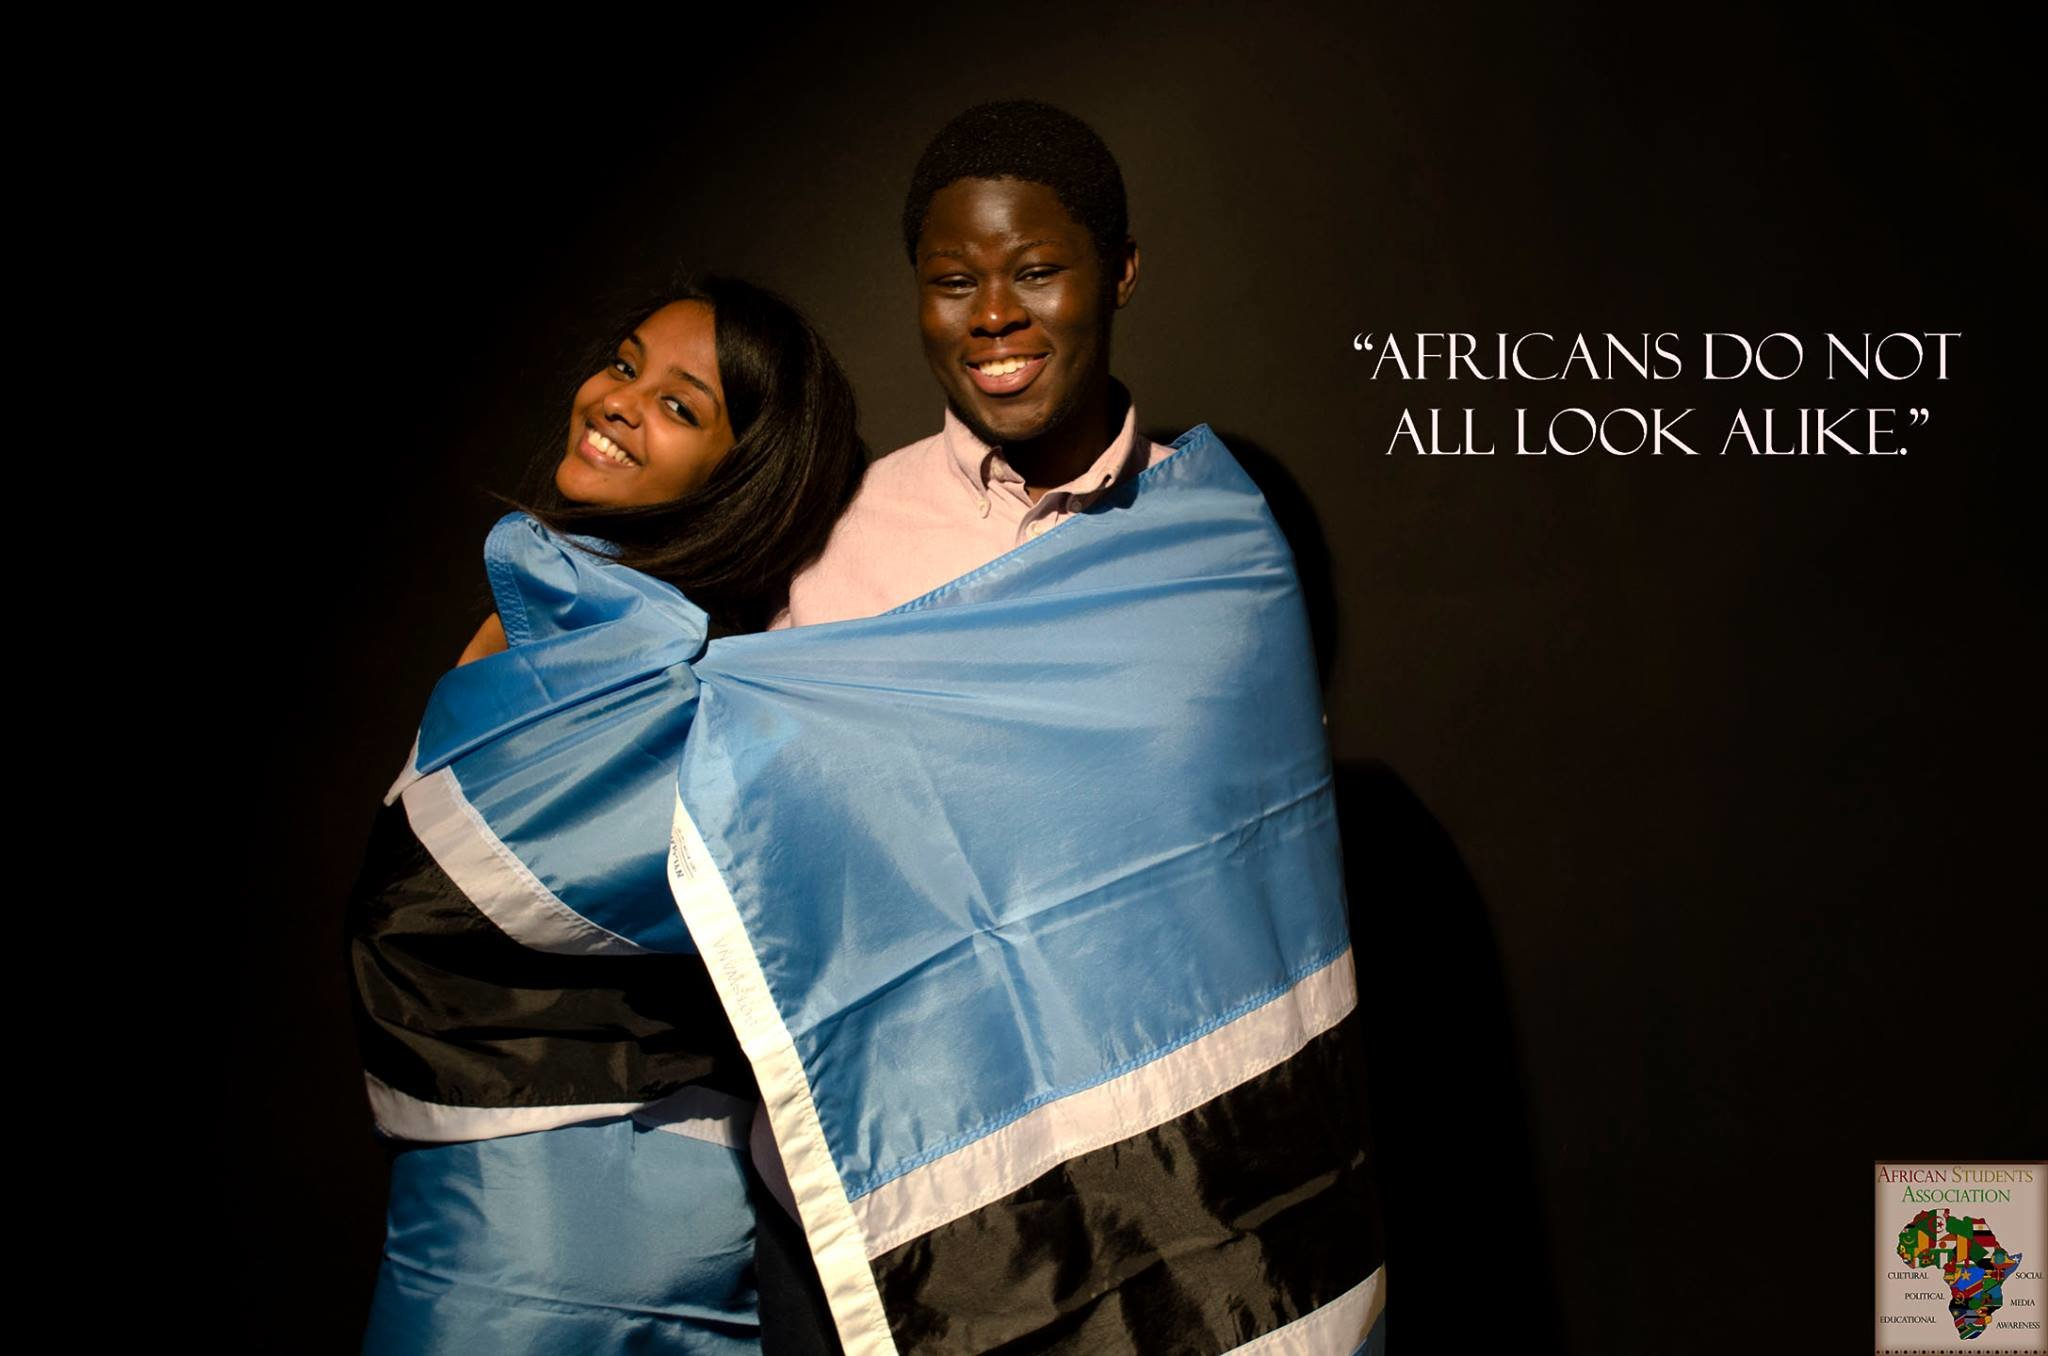 ic-african-students-association-real-africa-campaign-20